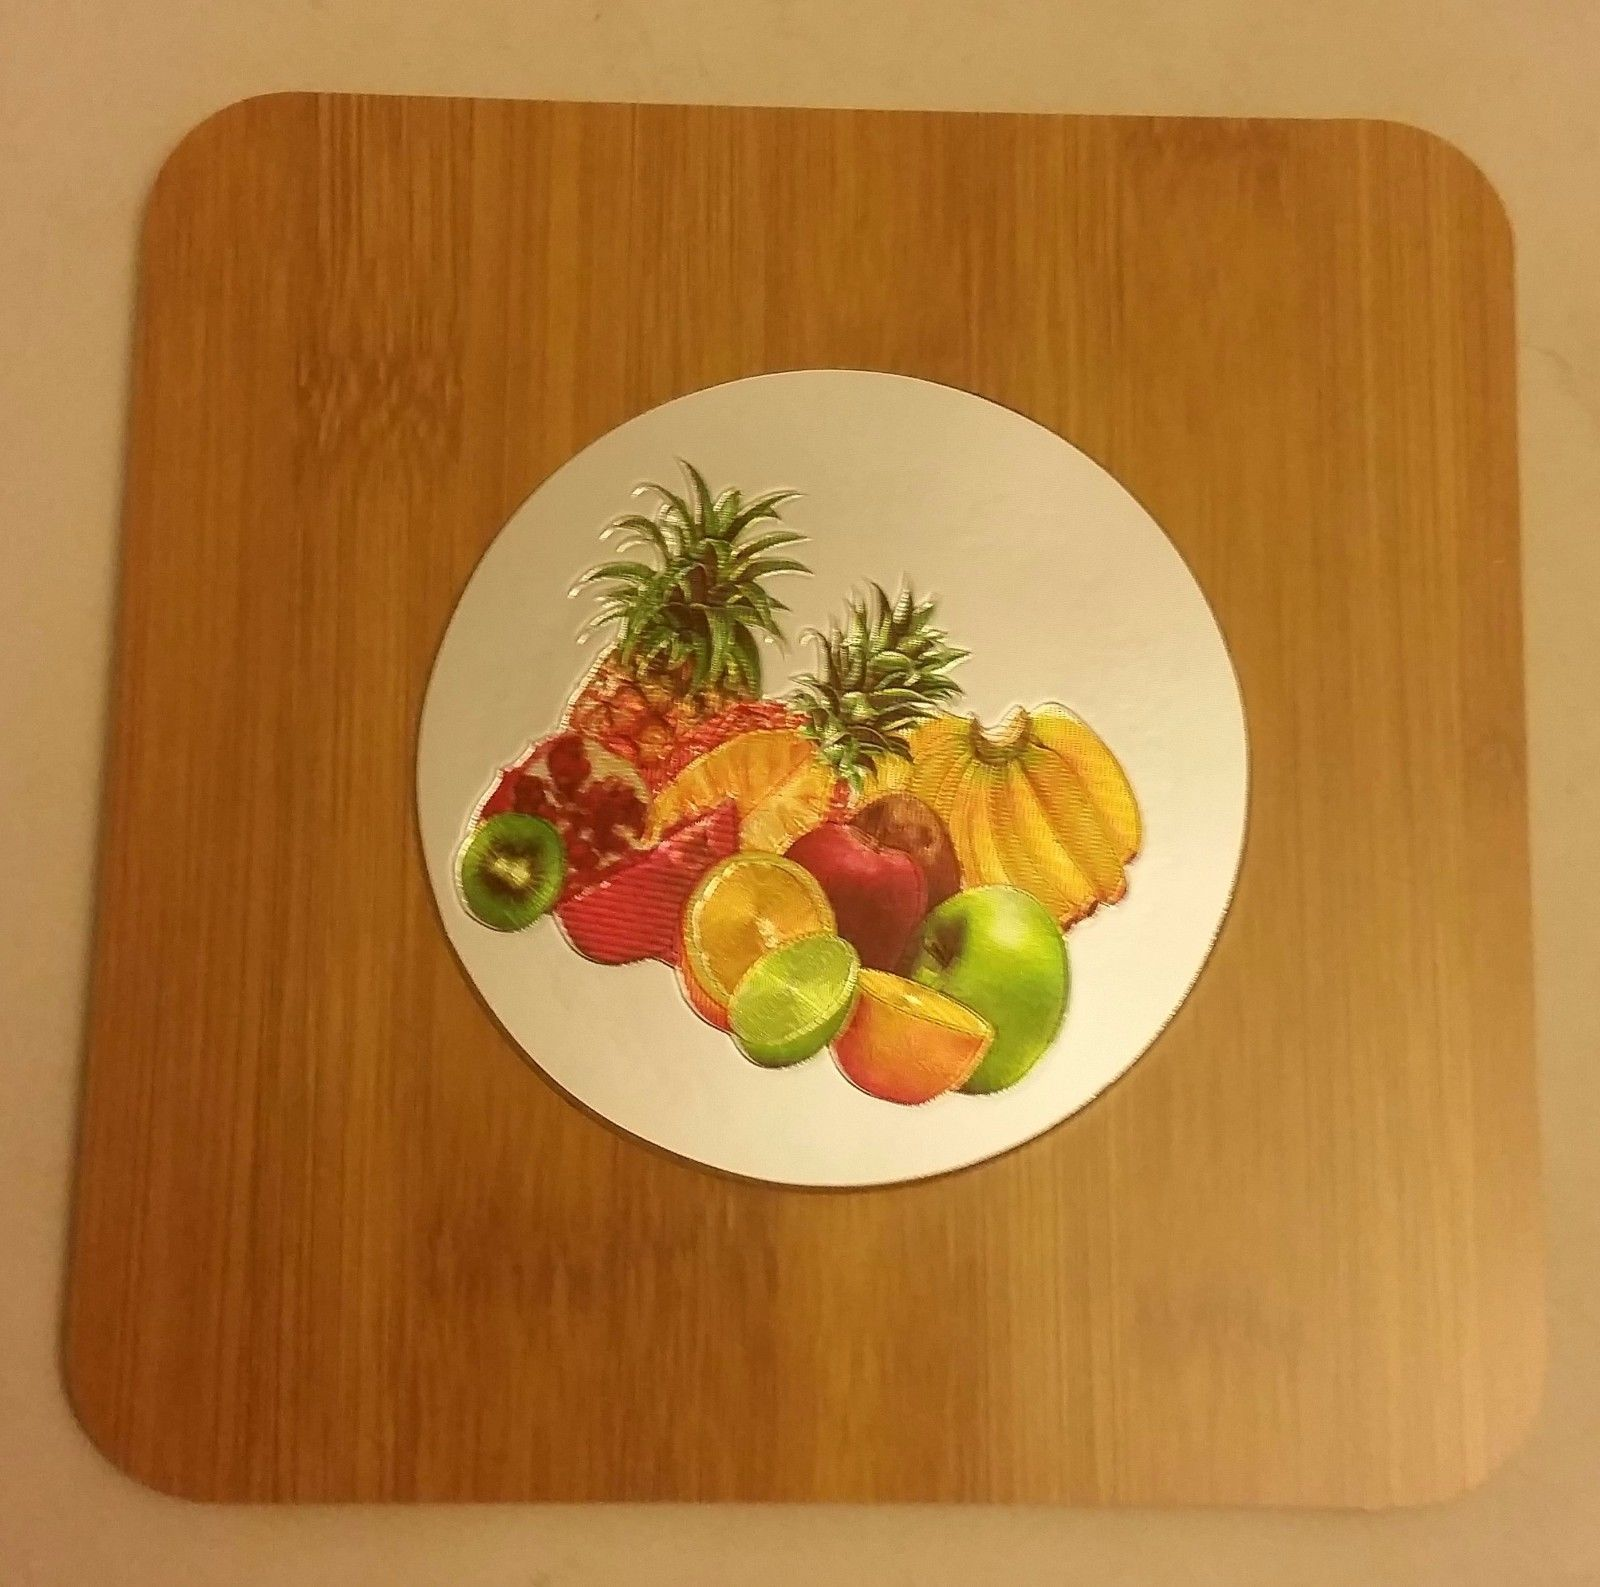 "Primary image for 1 Natural Bamboo Heat Pad, Kitchen Decor, 3D FRUITS, round, approx. 7"" x 7"""